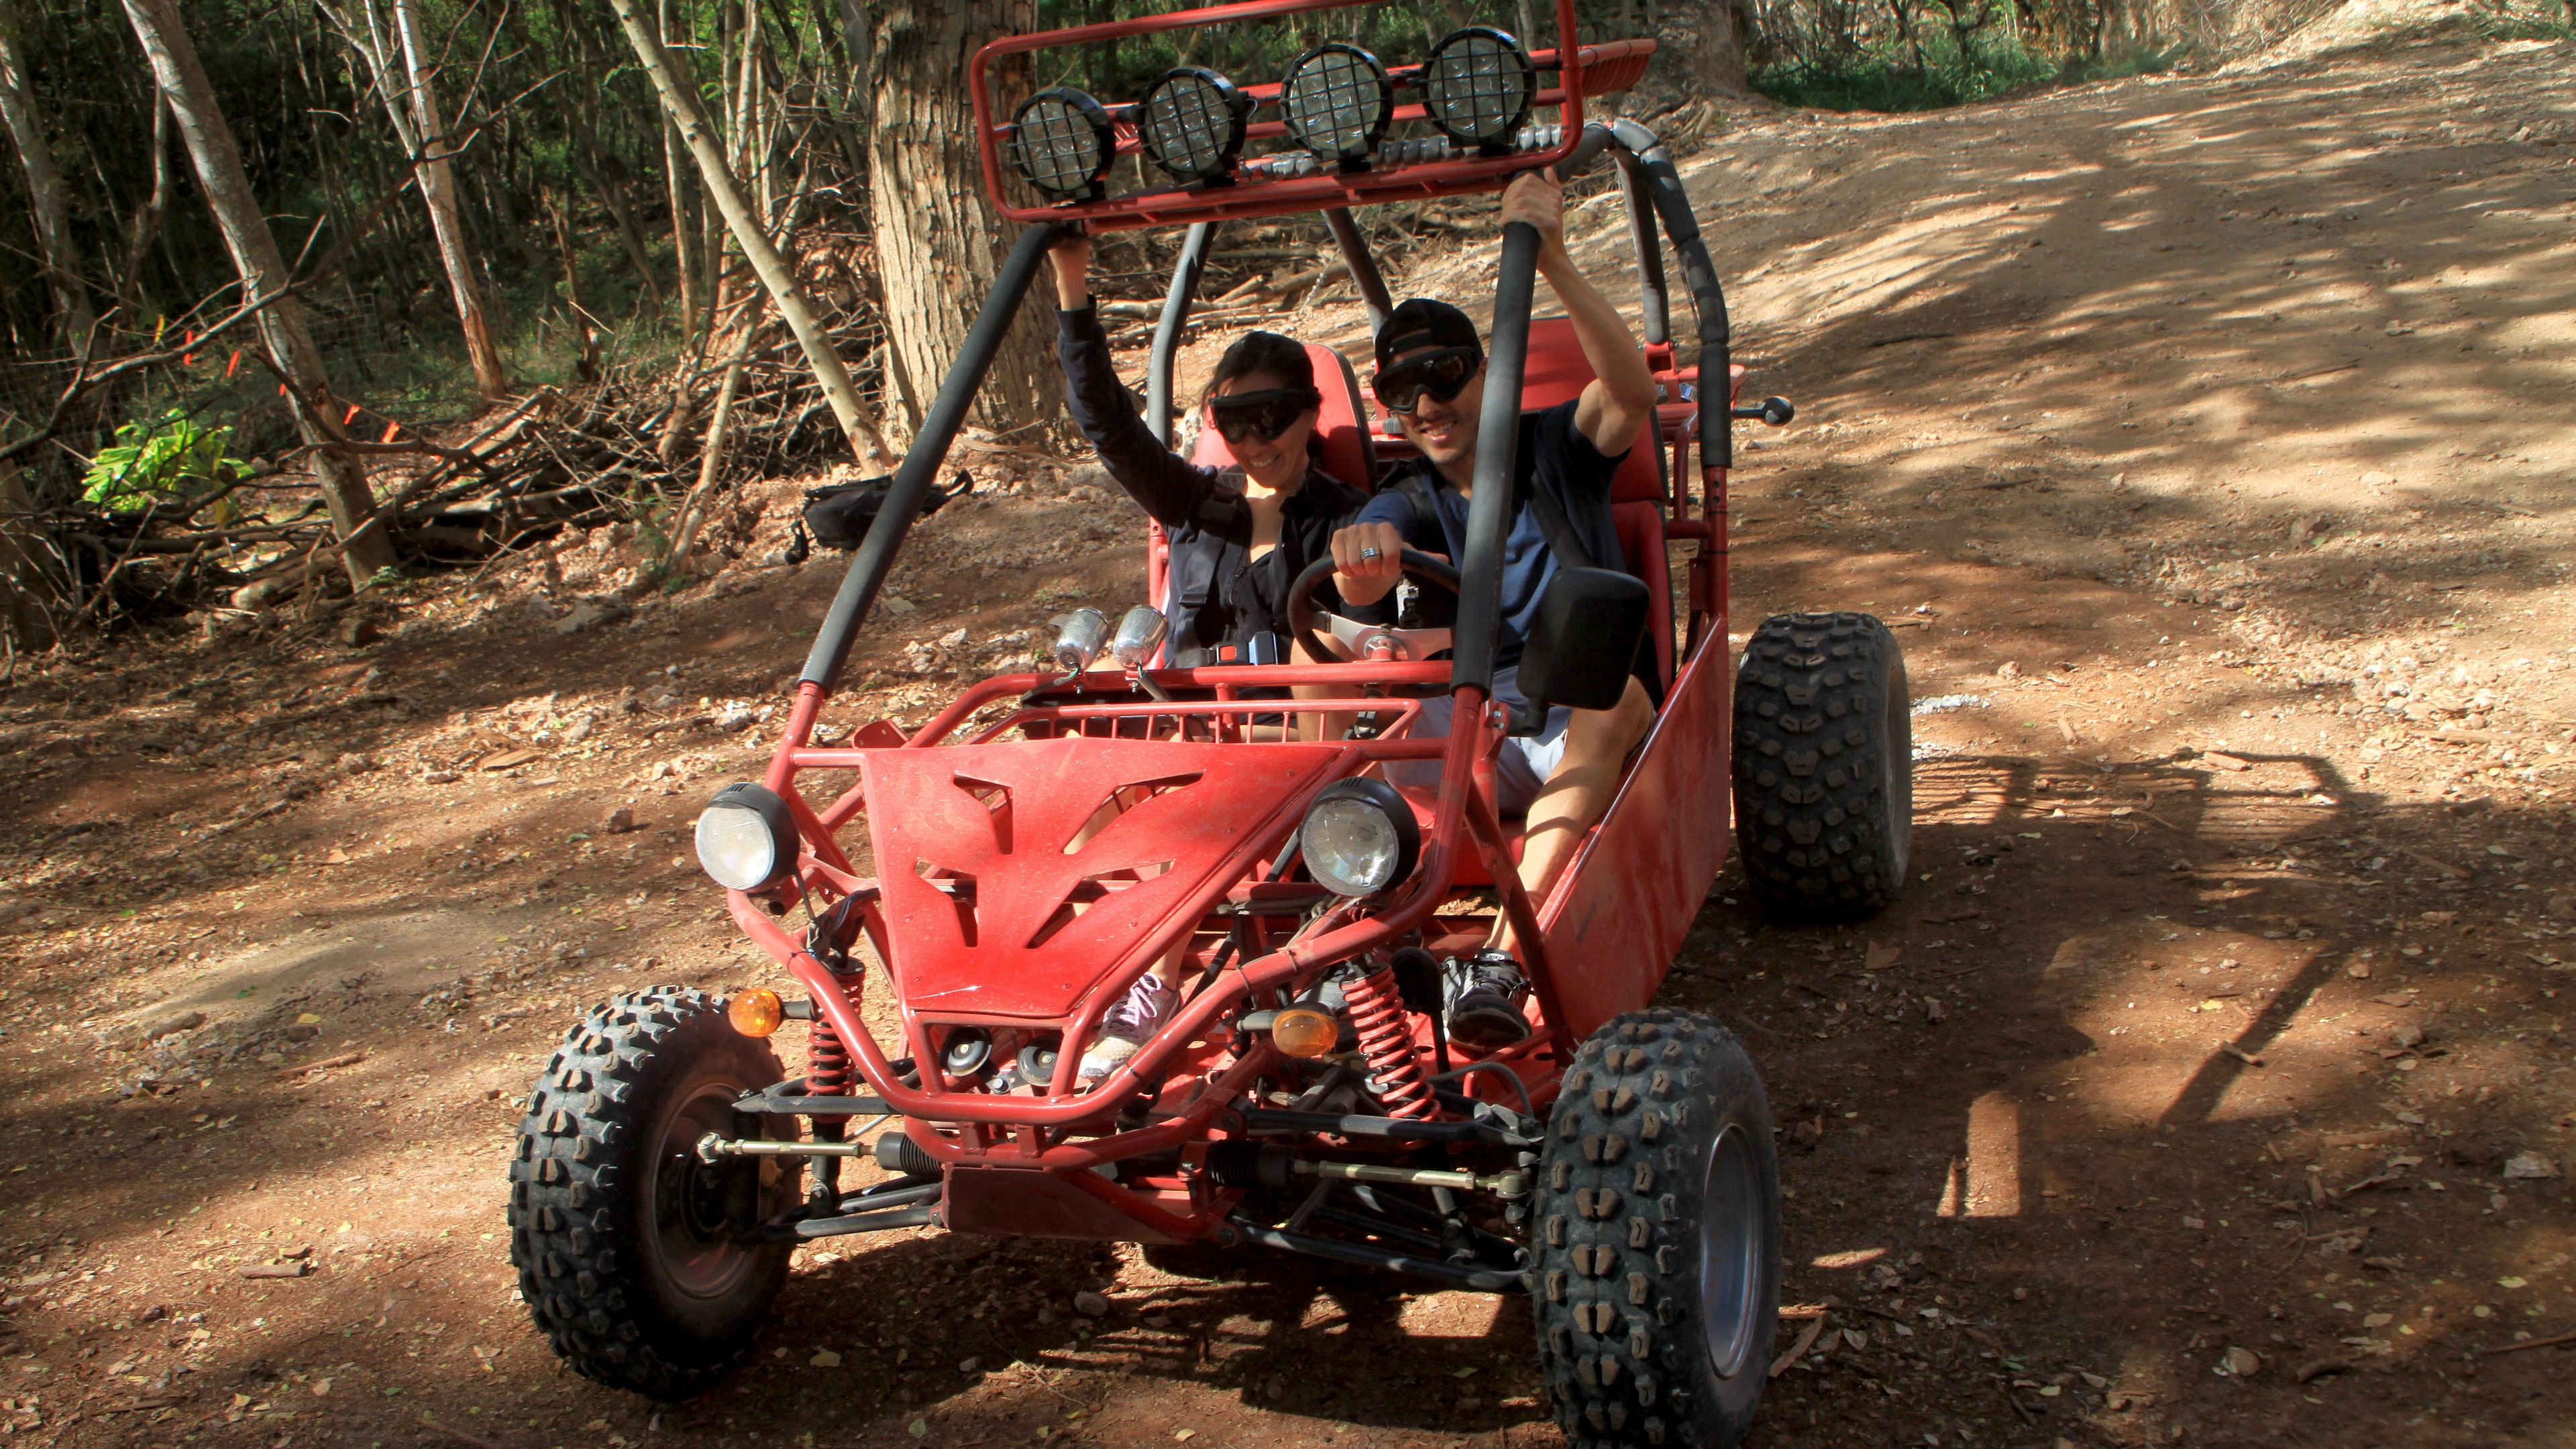 Couple driving an ATV on a dirt road on Oahu